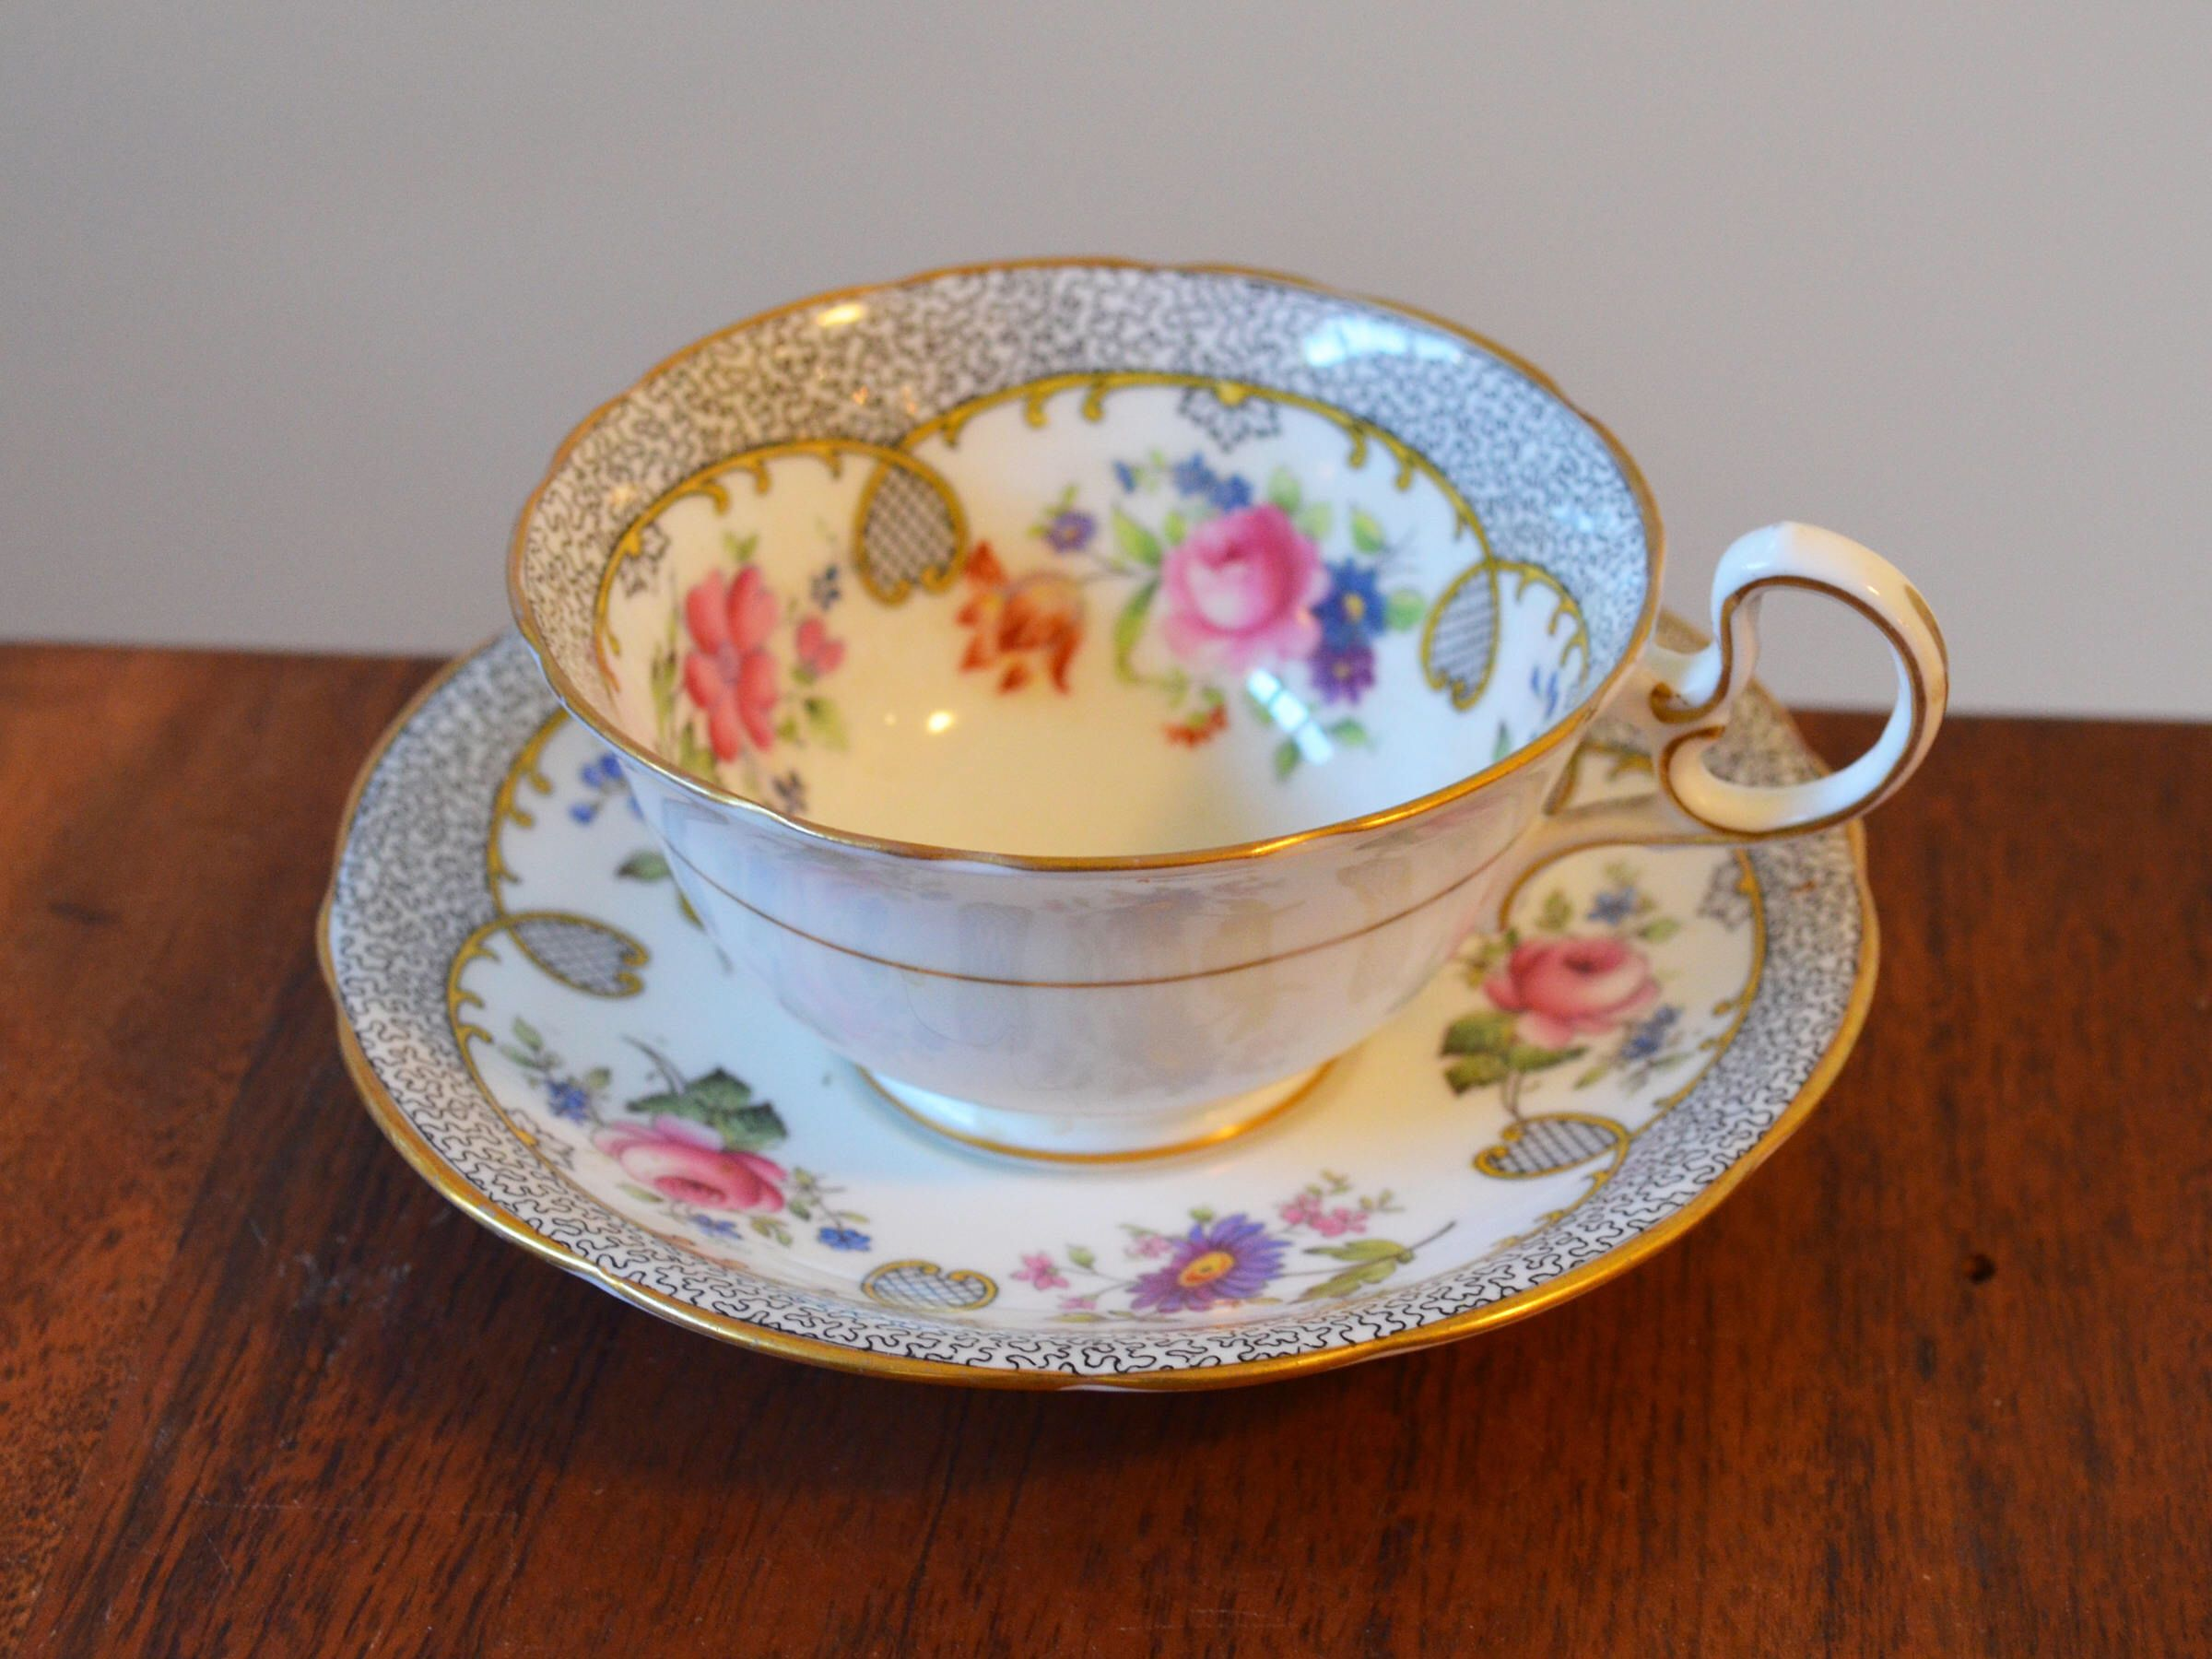 Antique Aynsley England Bone China Tea Cup And Saucer Stamped Handpainted 1344 Pink Roses